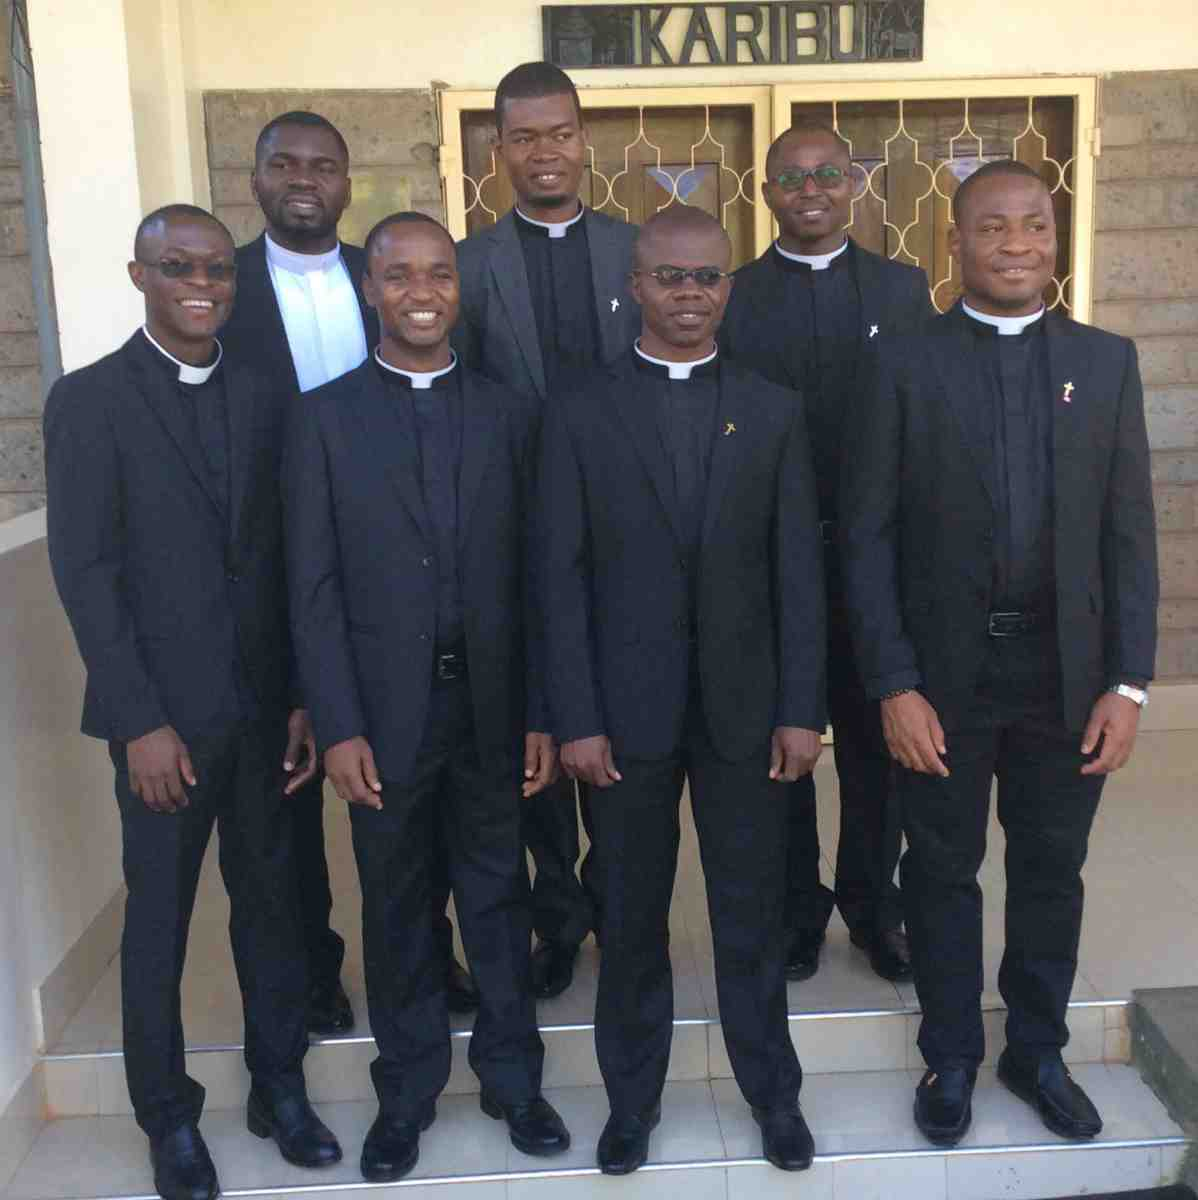 Newly ordained deacons from the Society of African Missions